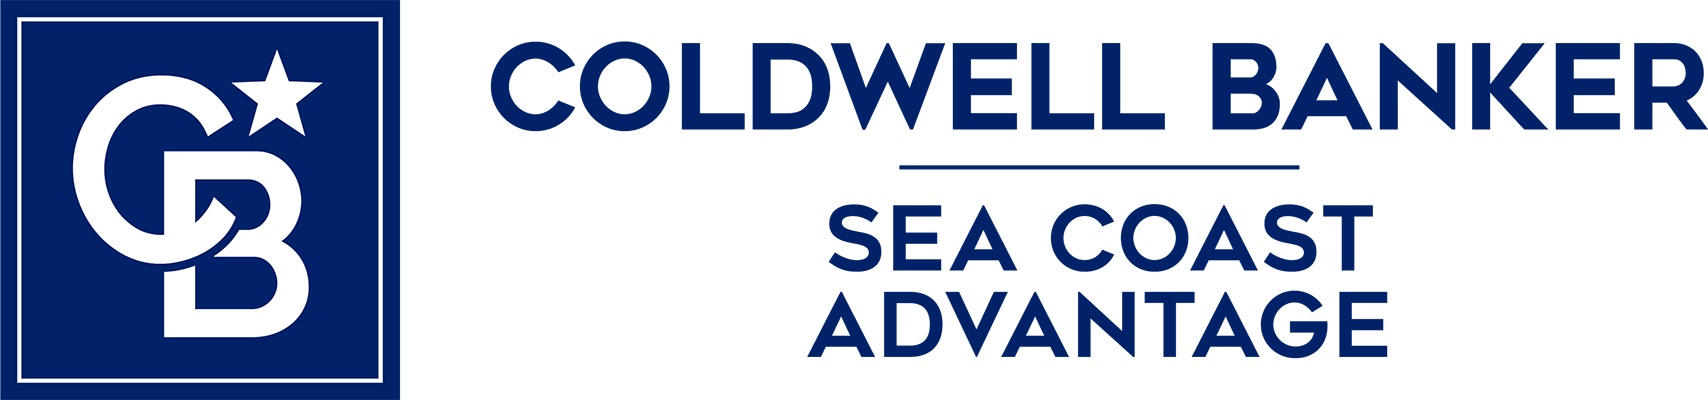 Rick Sprince - Coldwell Banker Sea Coast Advantage Realty